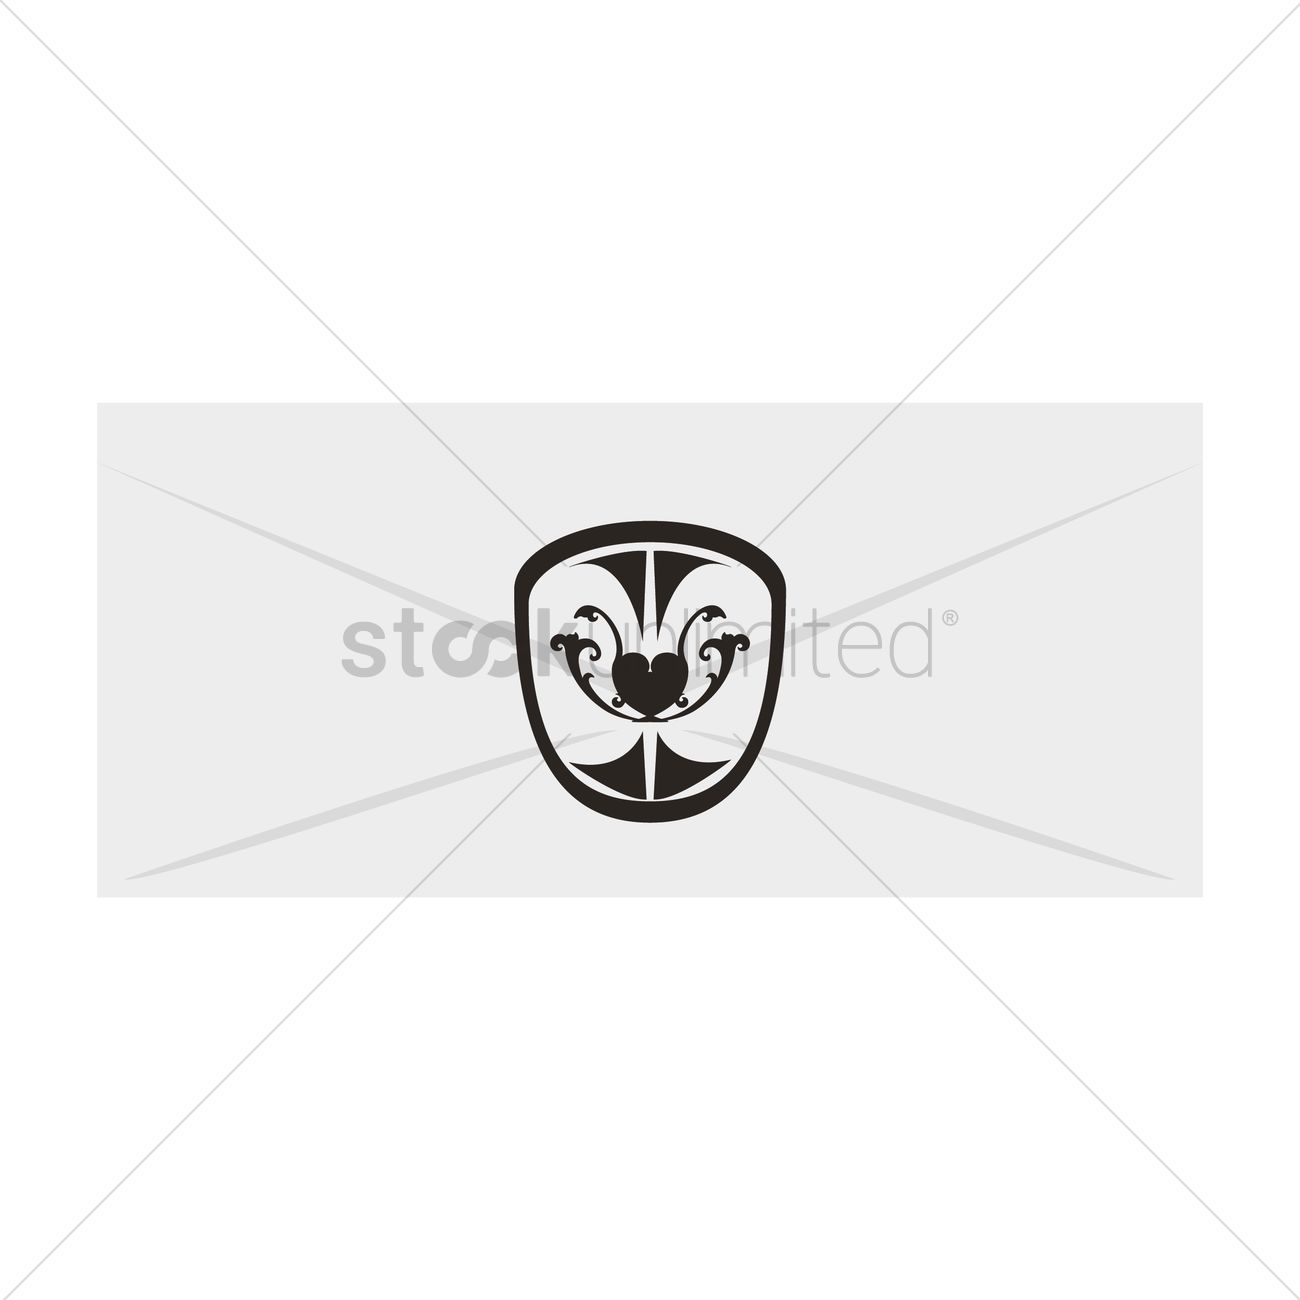 Invitation envelope vector image 1329424 stockunlimited invitation envelope vector graphic stopboris Choice Image